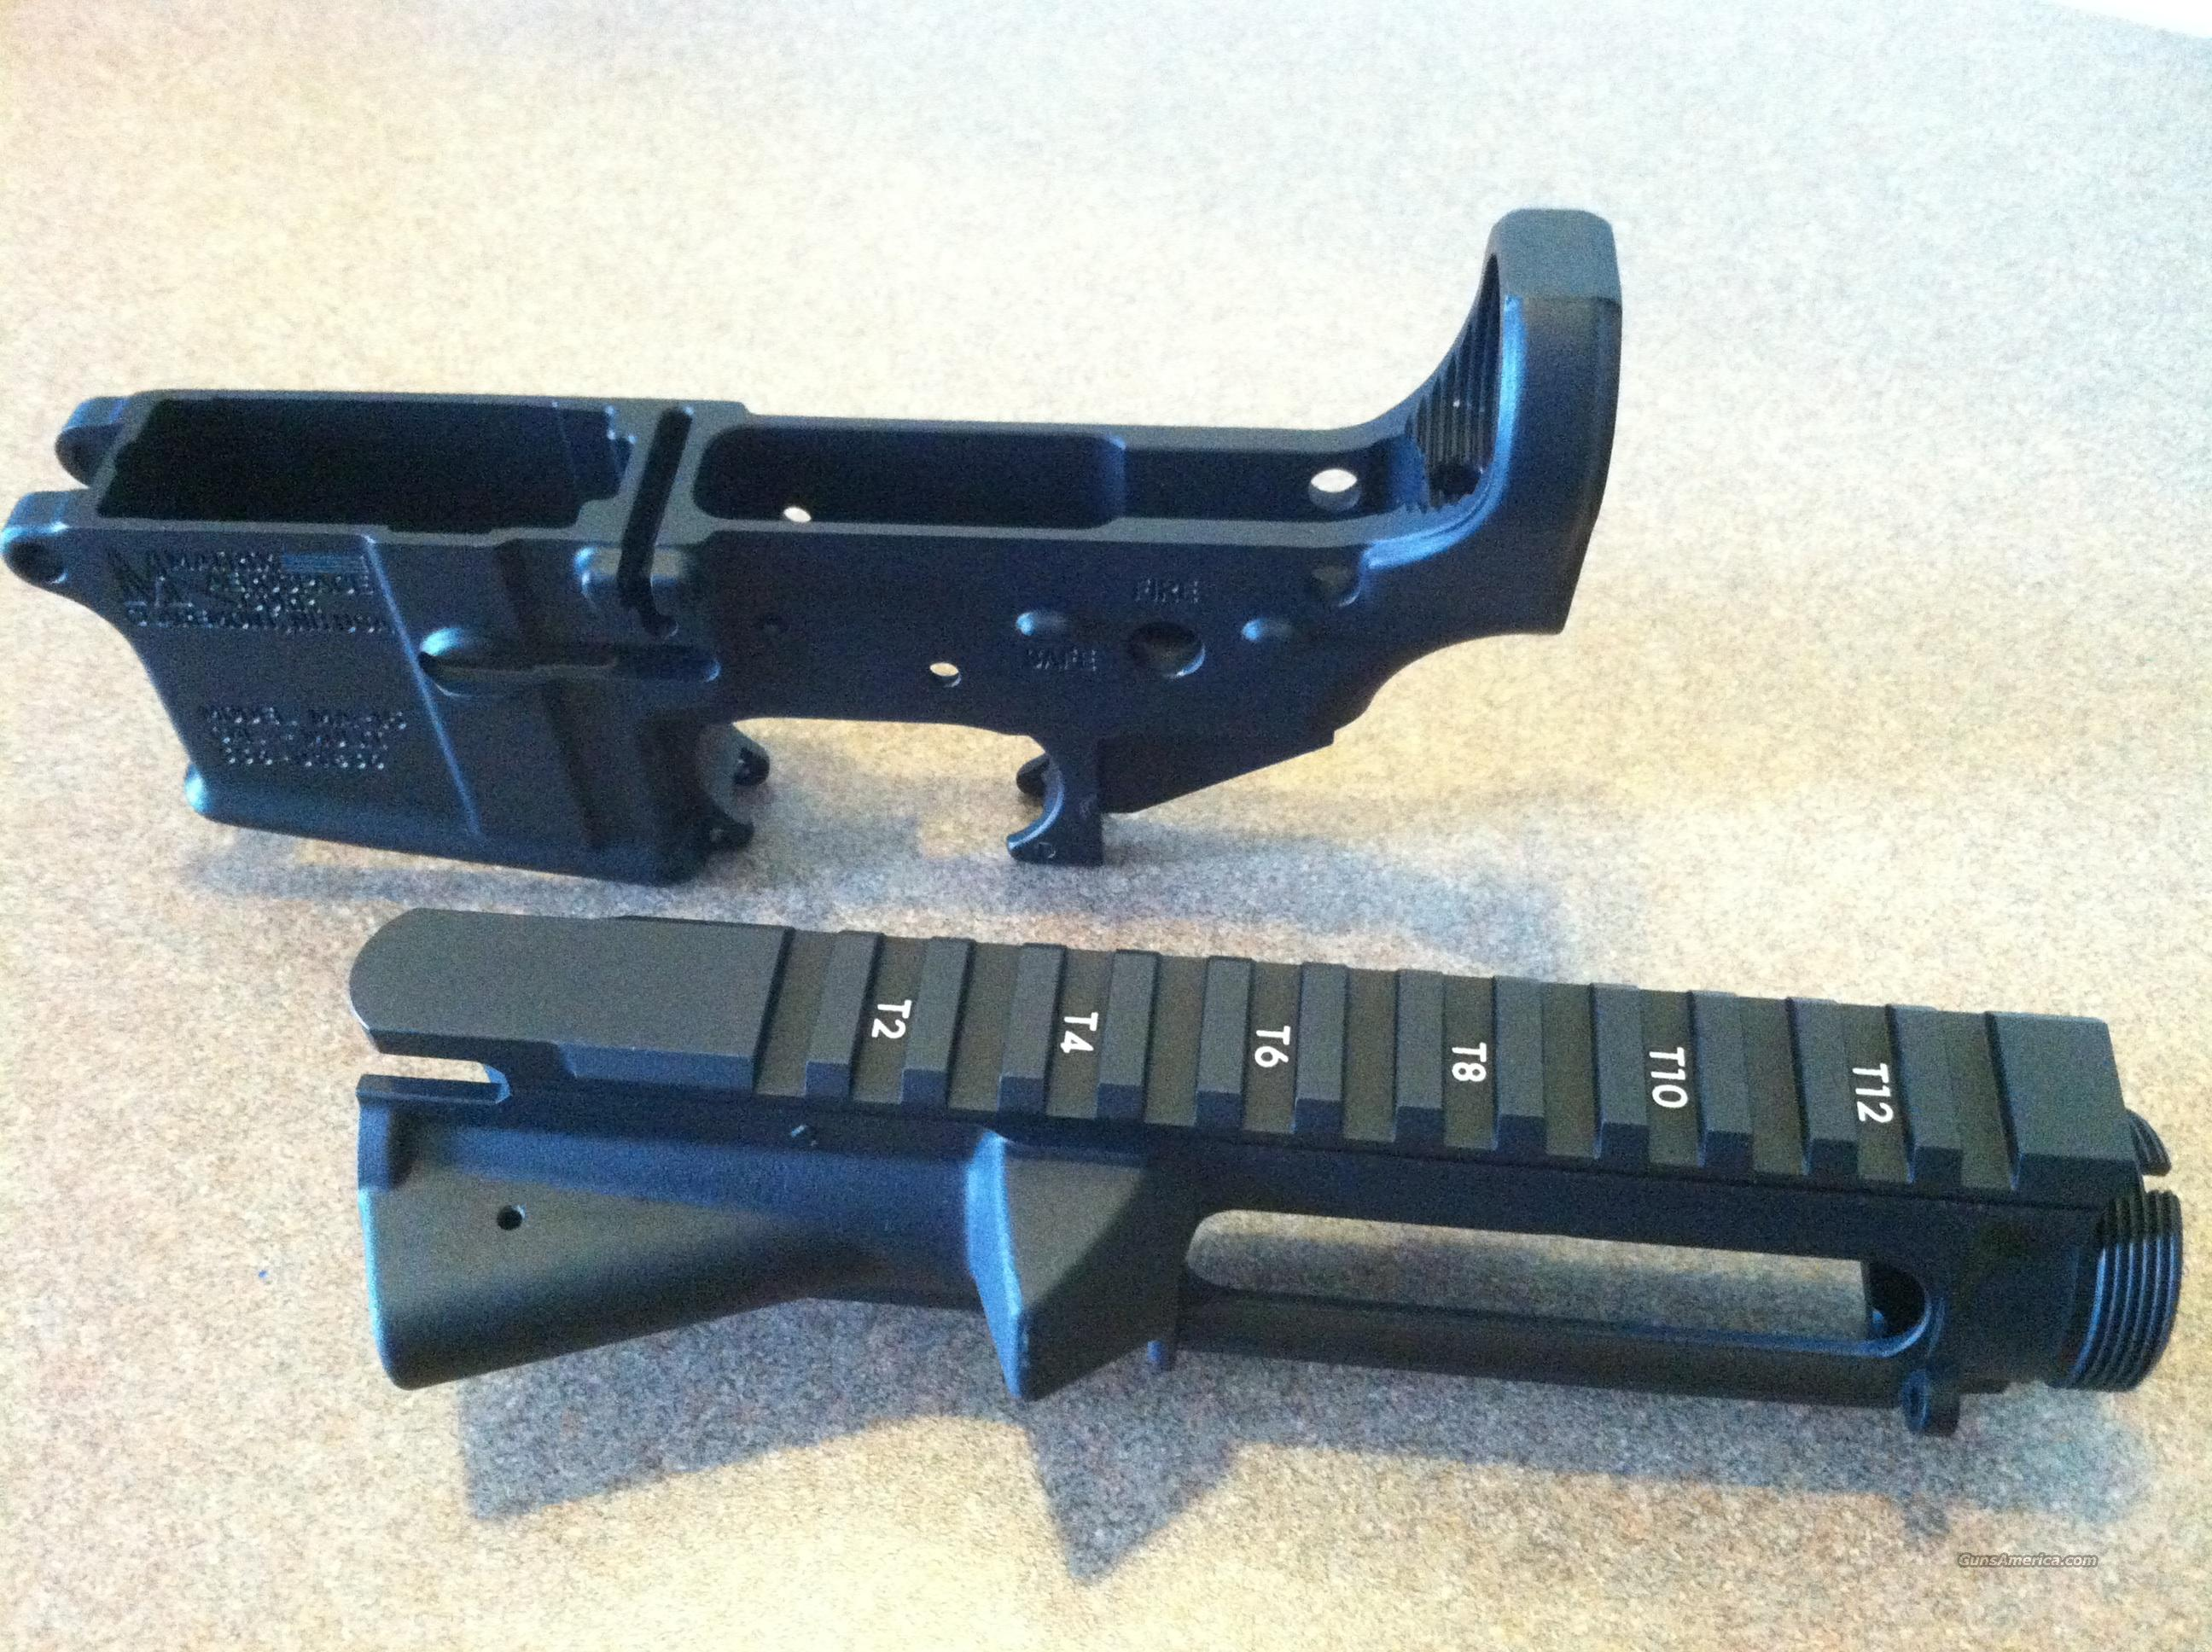 3 Upper & Lower Mil-Spec Stripped Receiver Sets  Guns > Rifles > AR-15 Rifles - Small Manufacturers > Complete Rifle